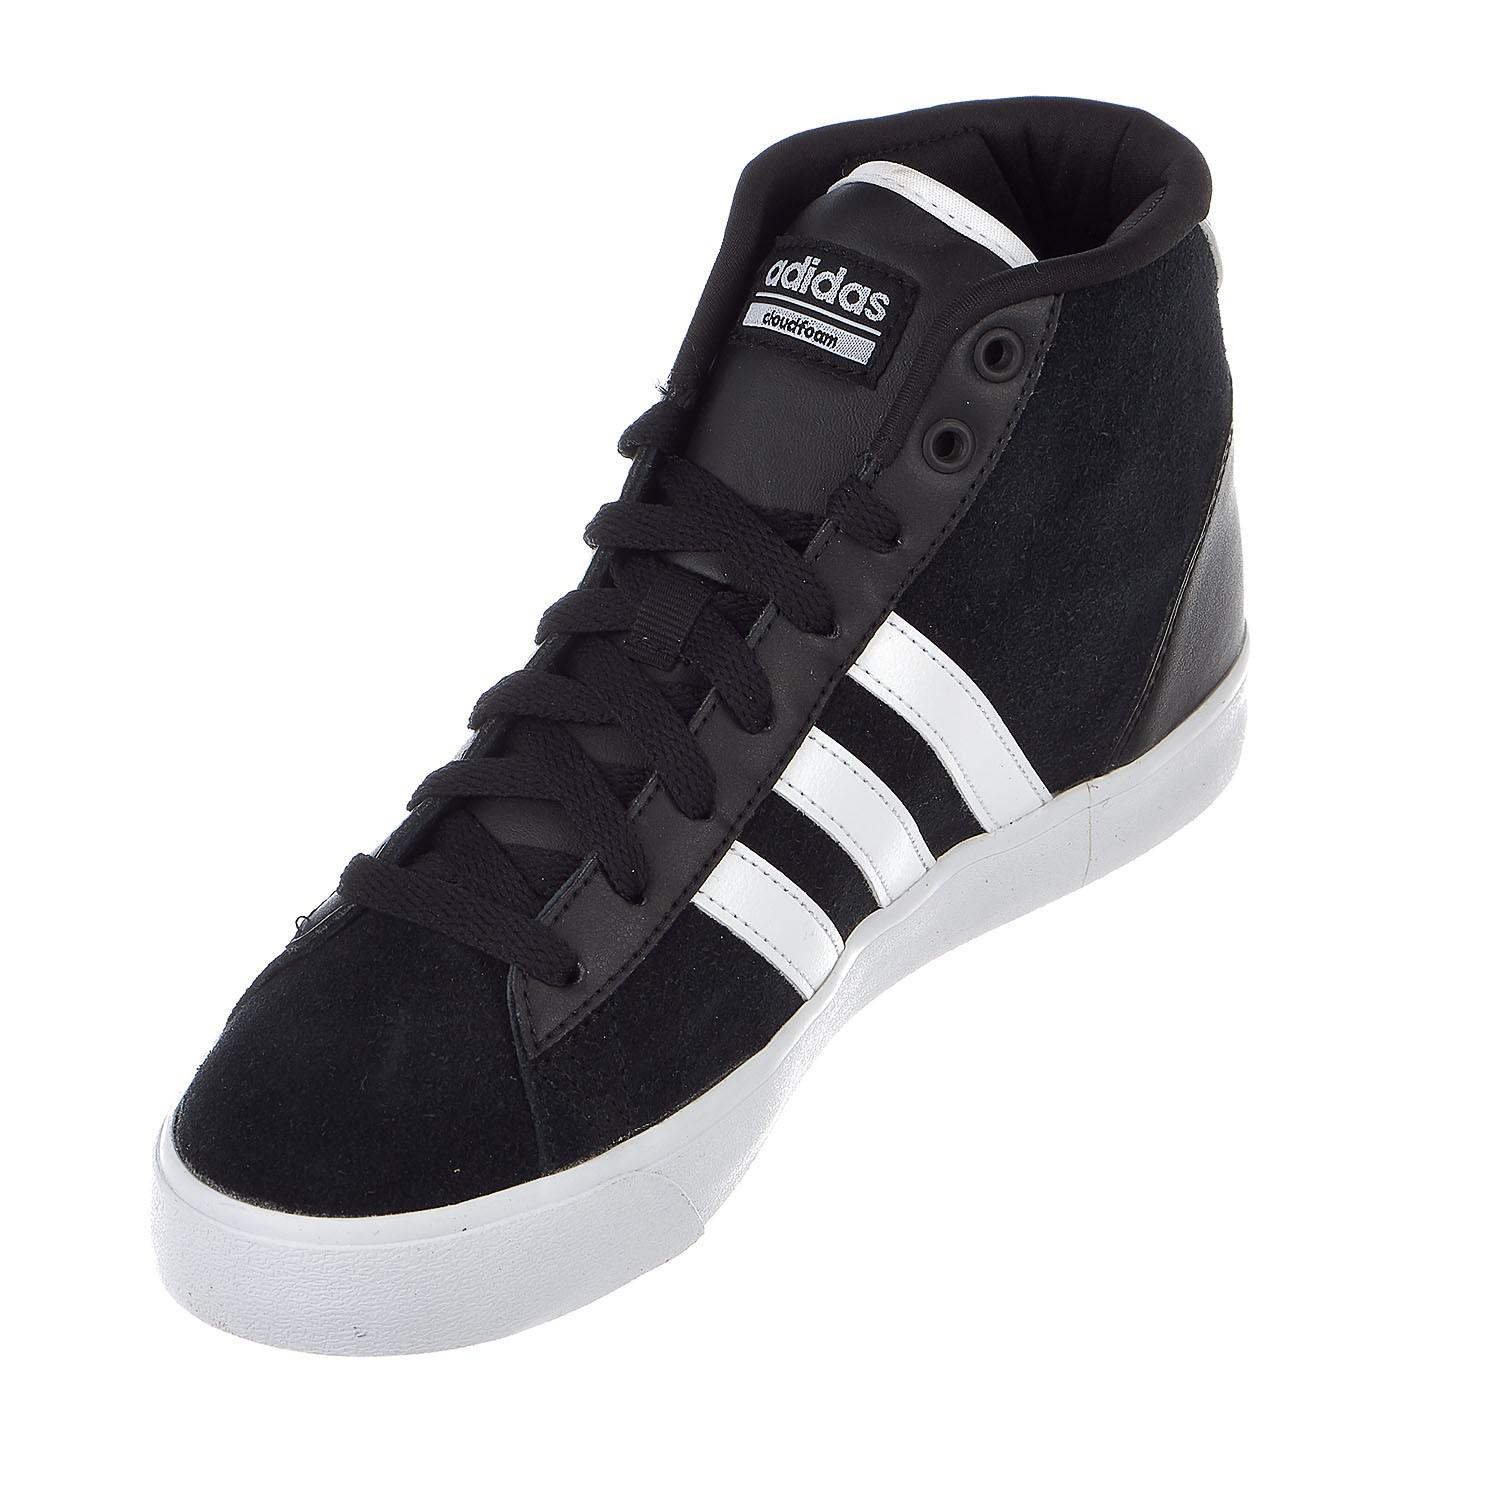 timeless design 5696a efa11 Lyst - adidas Neo Cf Daily Qt Mid W Sneaker in Black for Men